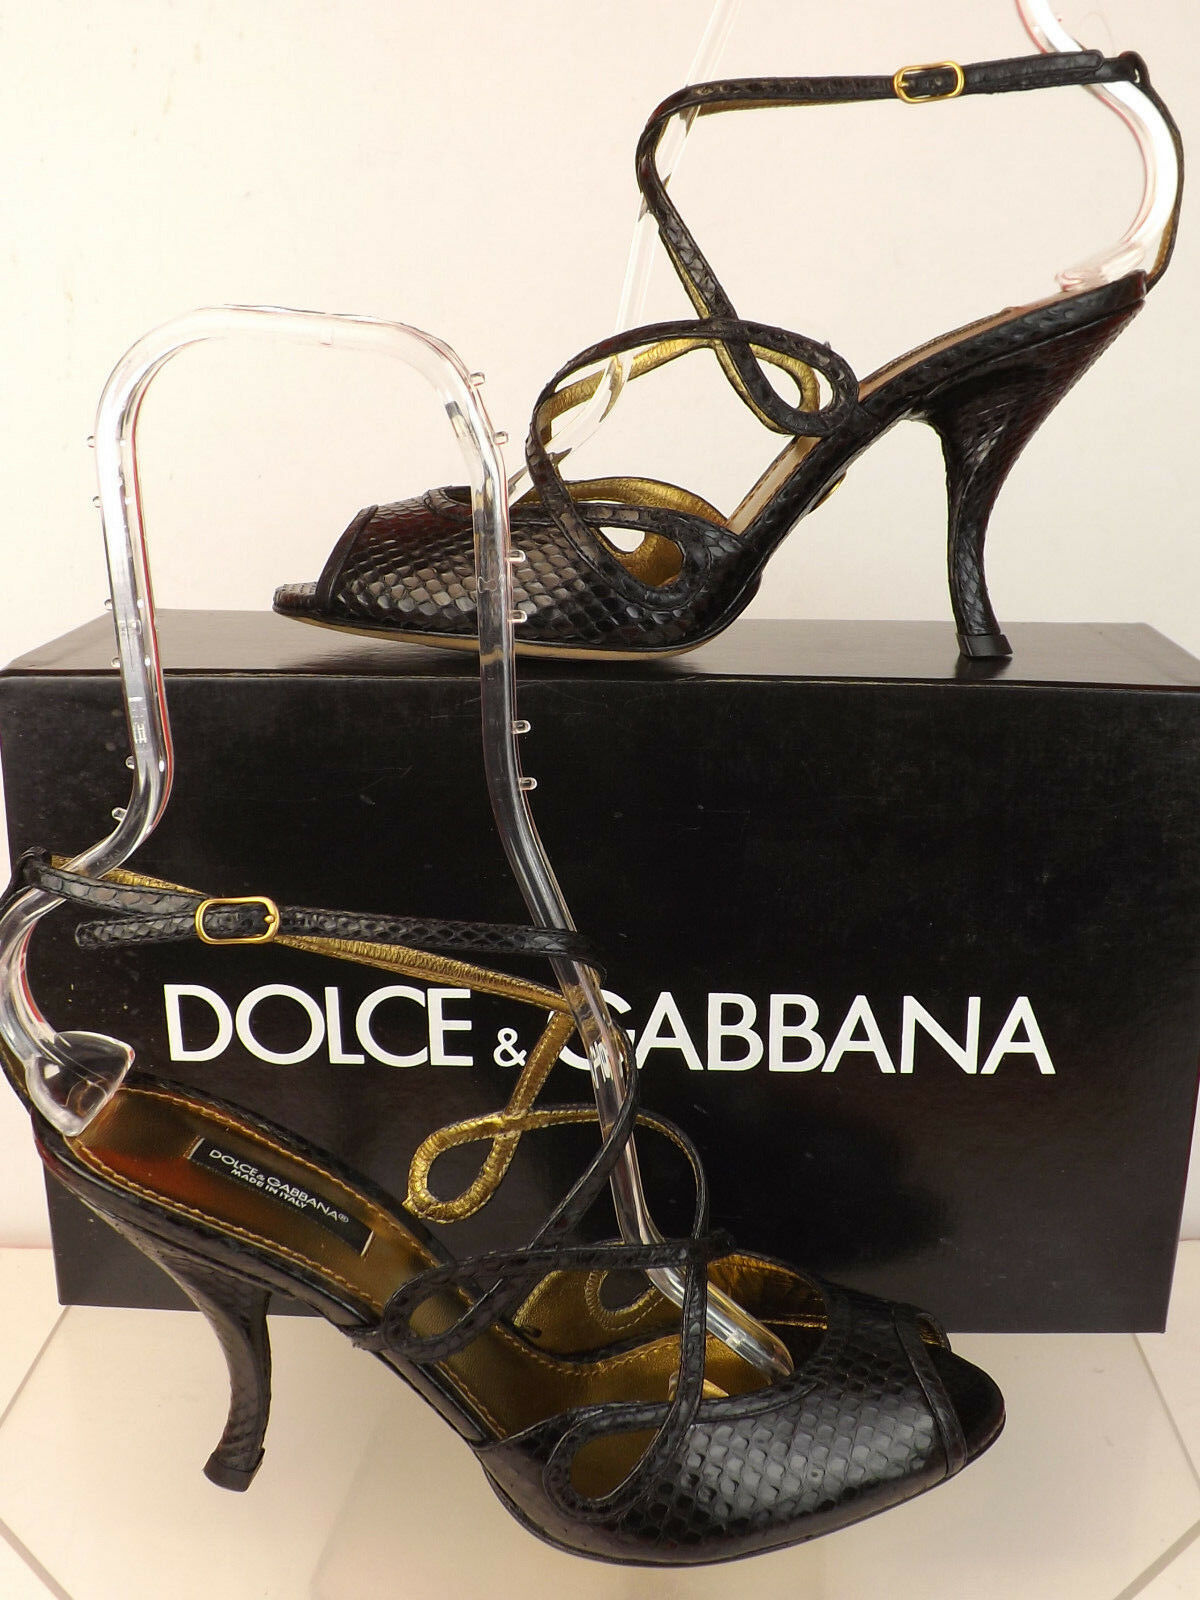 NIB DOLCE BLACK GABBANA BLACK DOLCE SNAKE LEATHER STRAPPY SANDALS PUMPS 37.5 ITALY db71e2